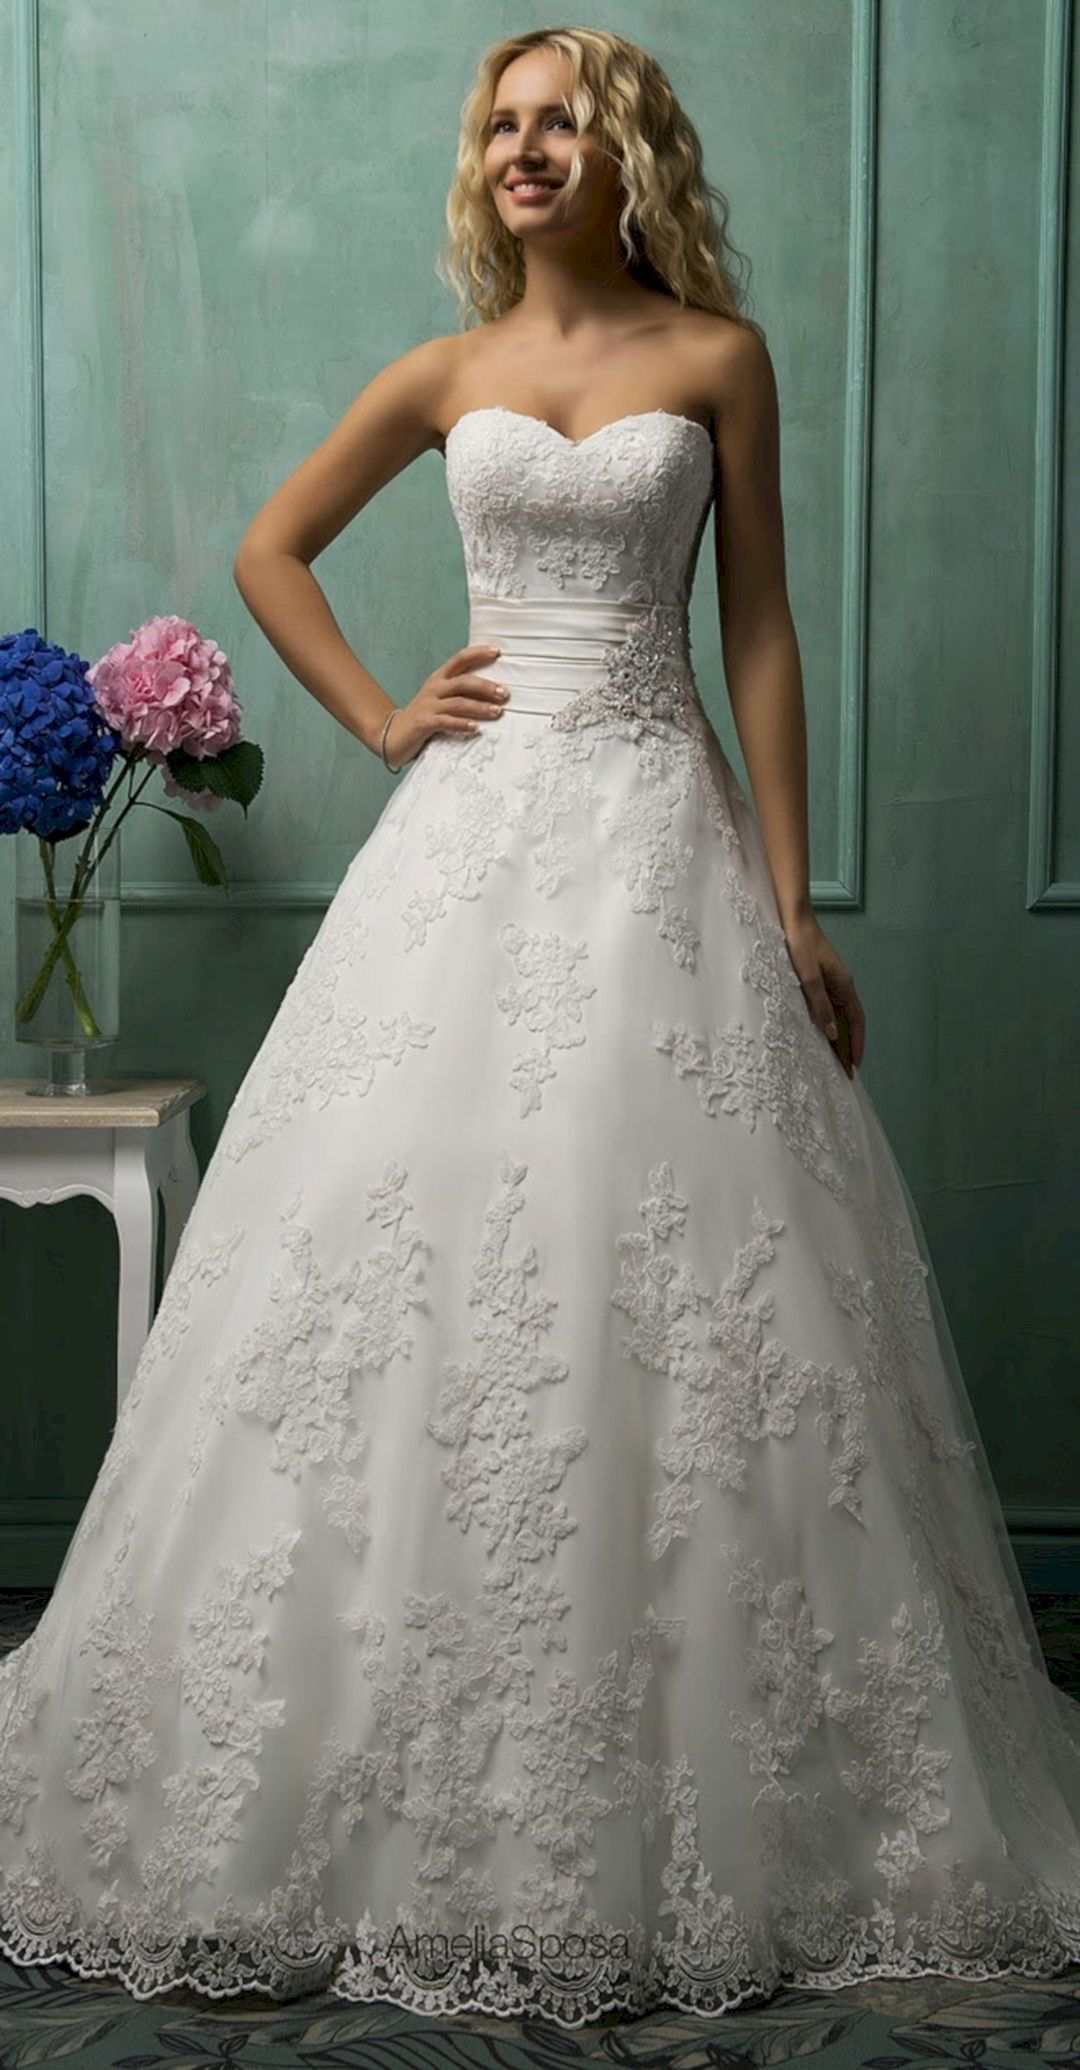 exclusive amelia sposa wedding dress collections amelia sposa